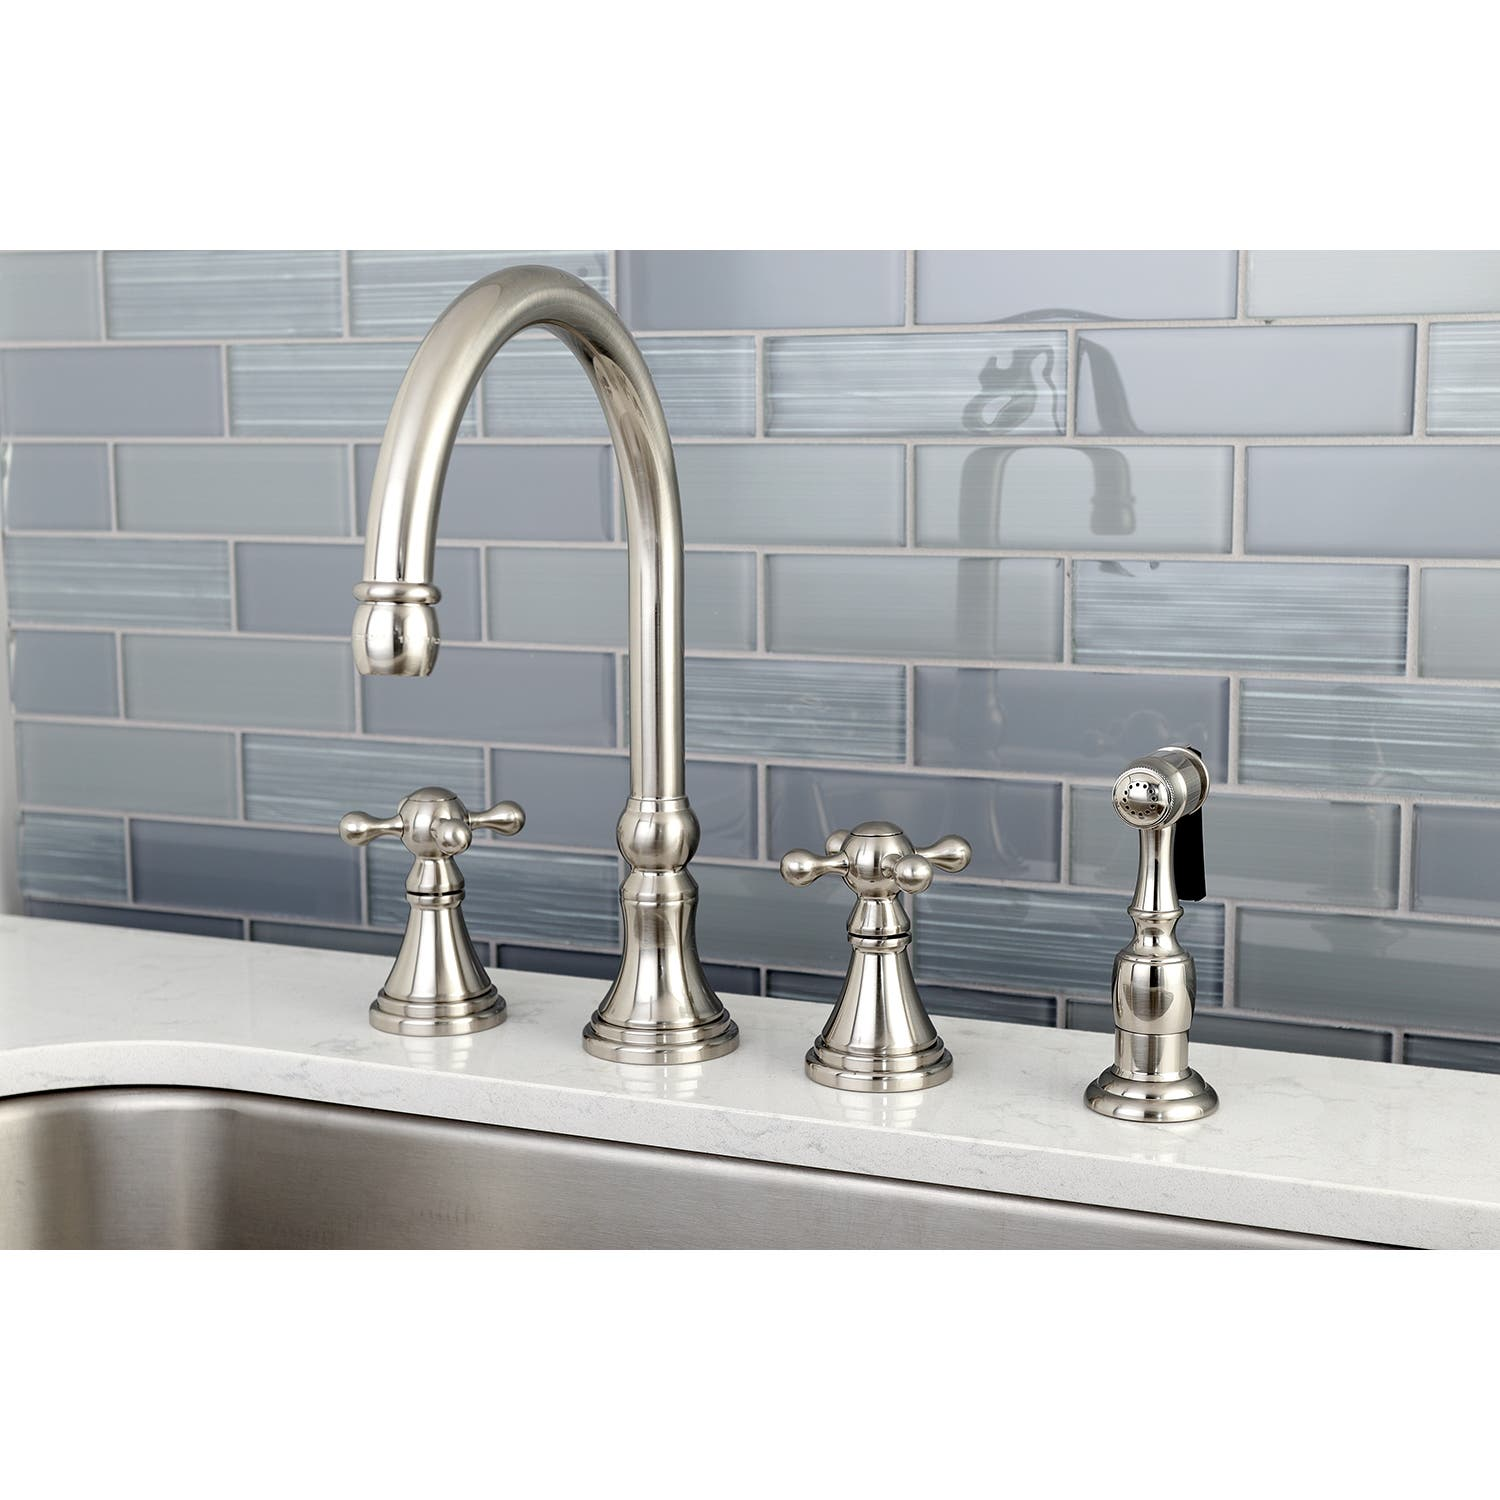 Kingston Brass KS8641ML Milano 4-Inch Centerset Lavatory Faucet with Brass Pop-Up Polished Chrome